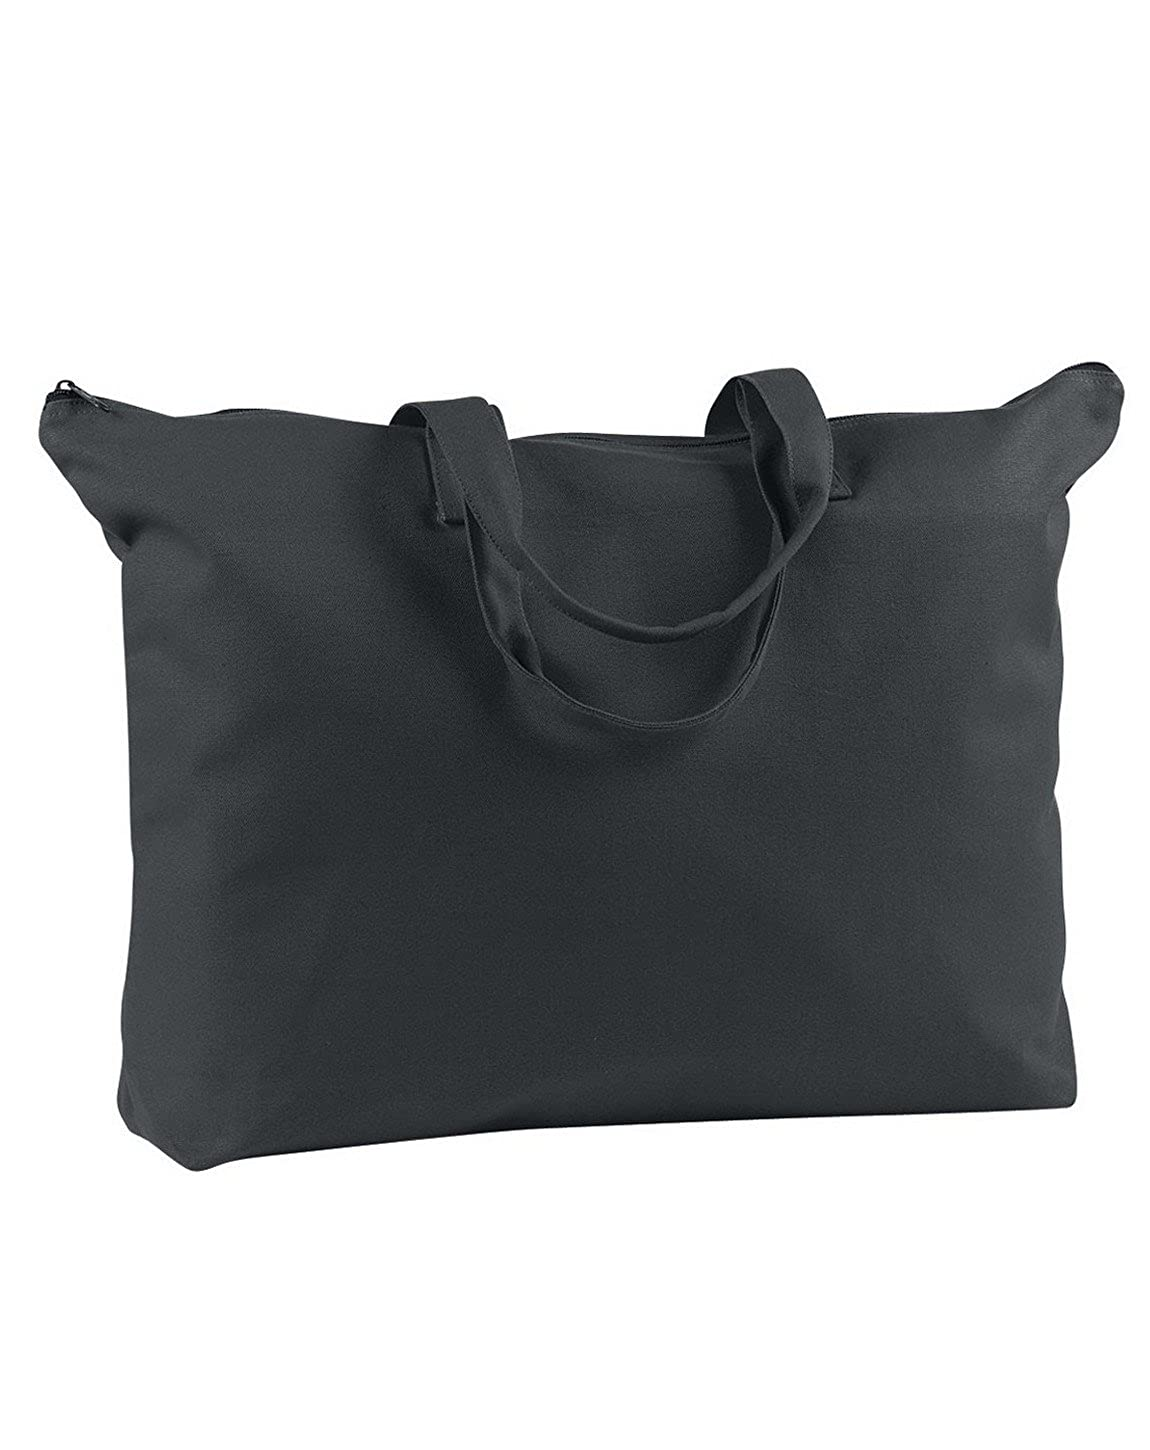 BAGedge BE009 Canvas Zippered Book Tote